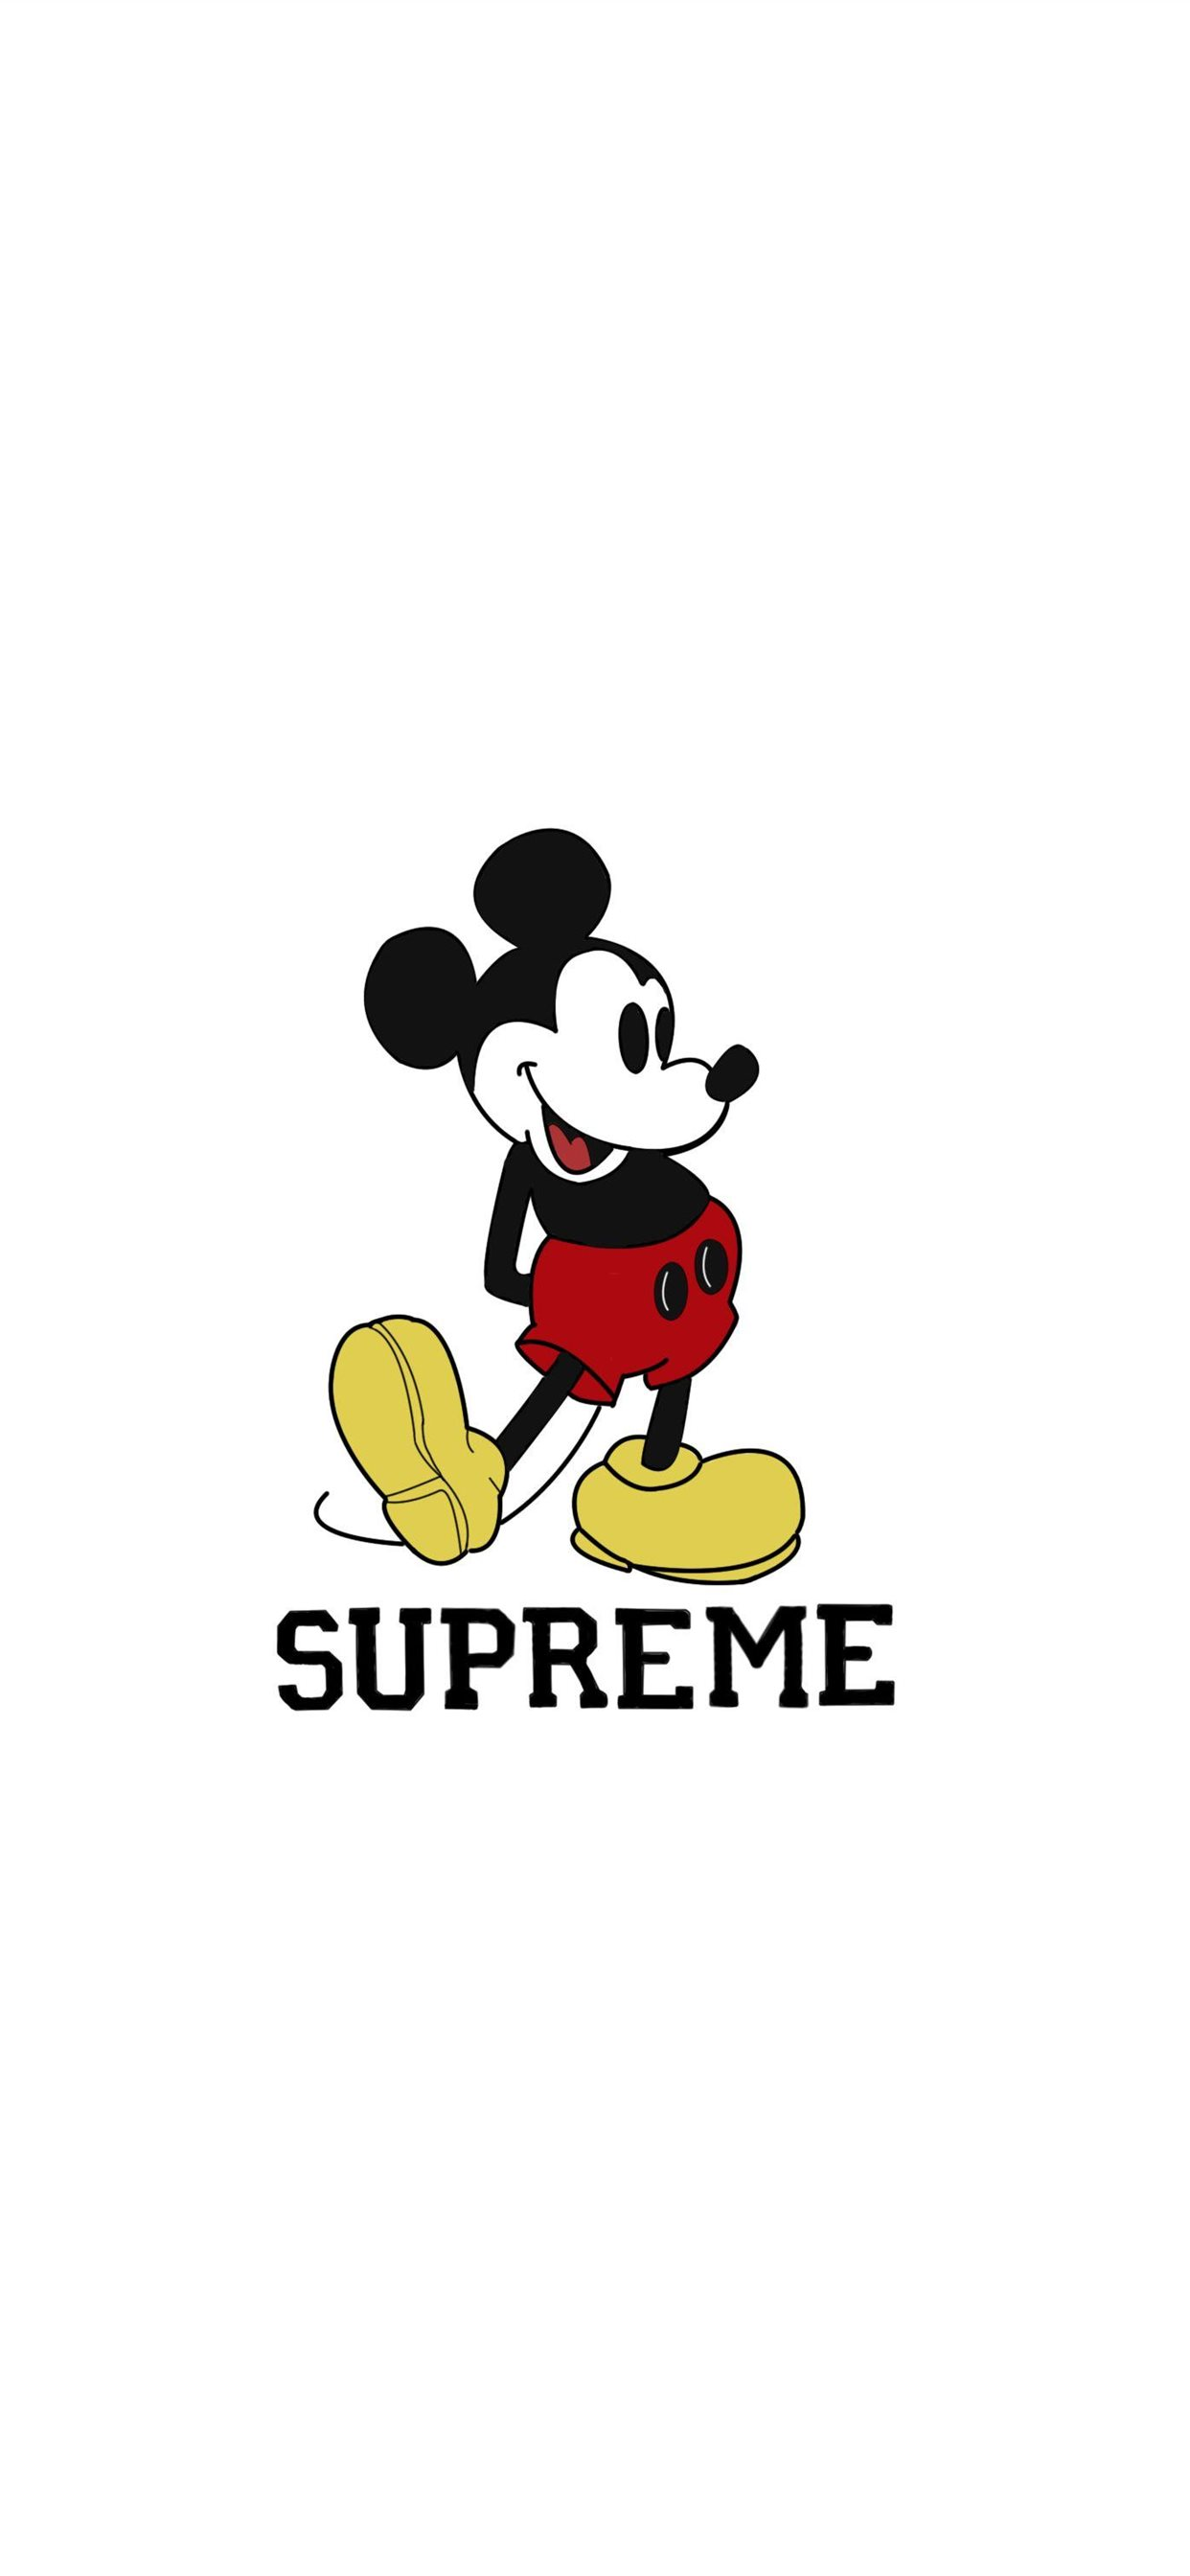 Supreme Cave Iphone 11 Wallpaper Supreme Wallpaper Mickey Mouse 1242x2688 Download Hd Wallpaper Wallpapertip